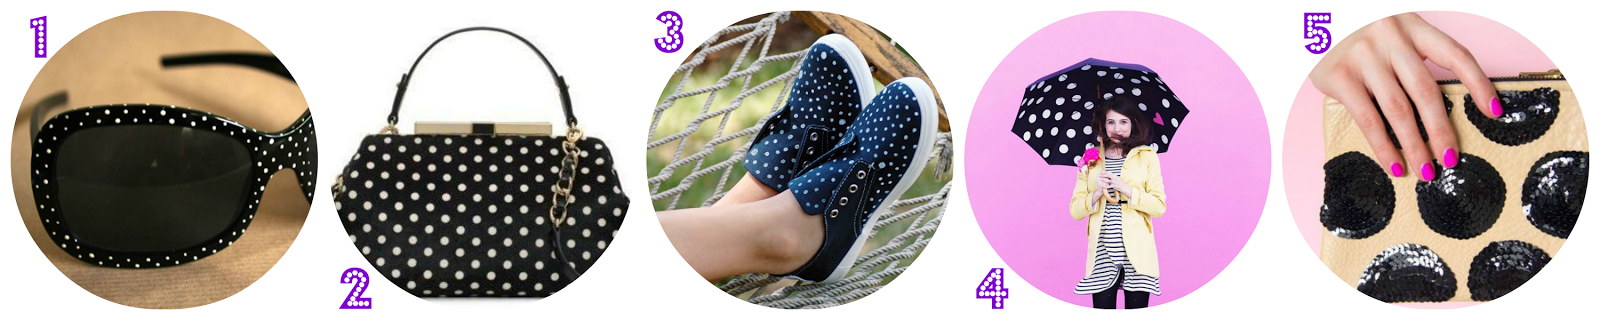 ACCESORIOS DE MODA CON ESTAMPADO DE LUNARES / POLKA DOT PATTERN ON FASHION DIY